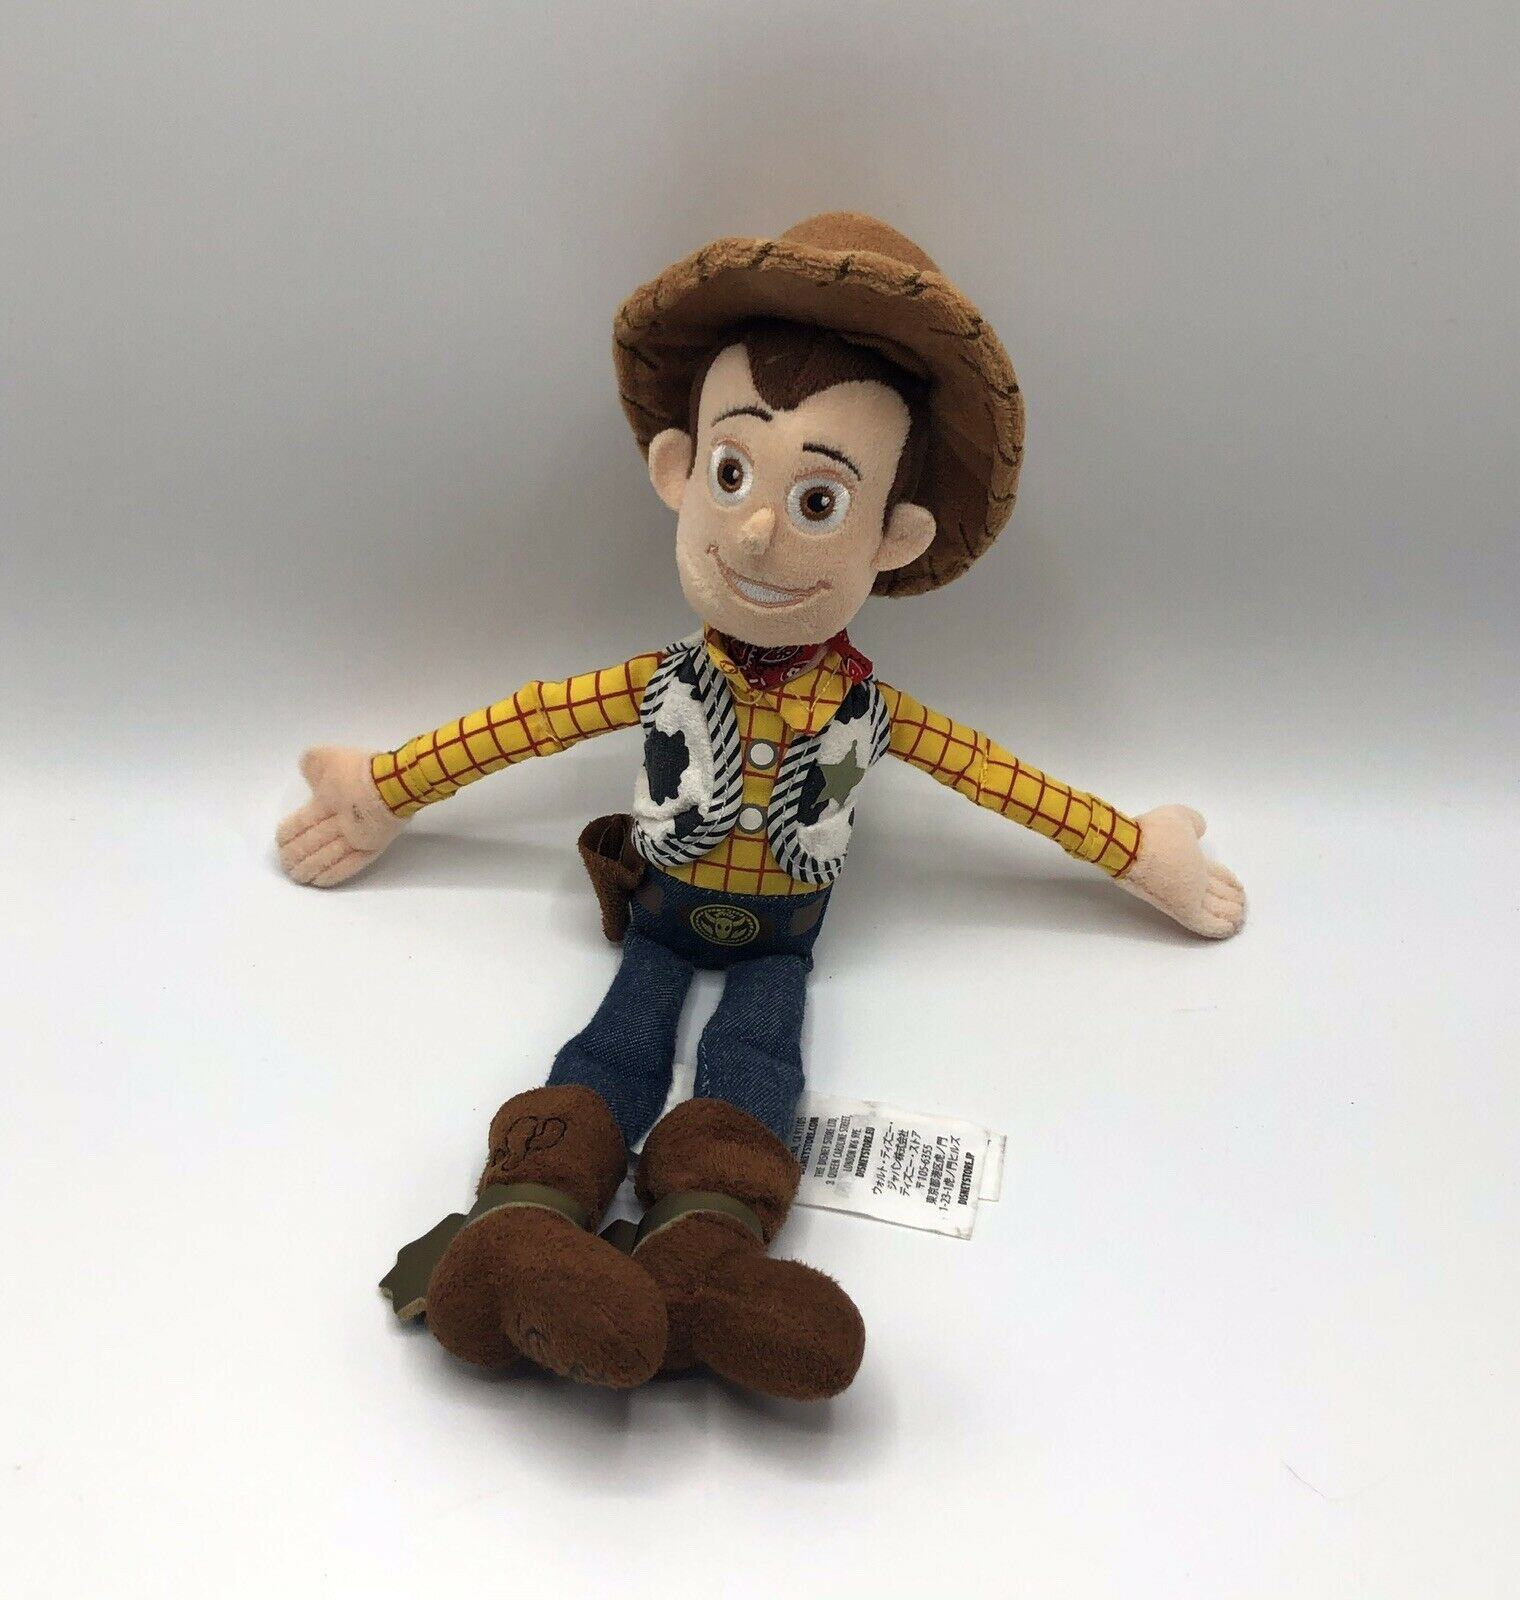 "Primary image for Disney Store Toy Story Woody Plush Doll 13 Inches ""Andy"" Under Foot"